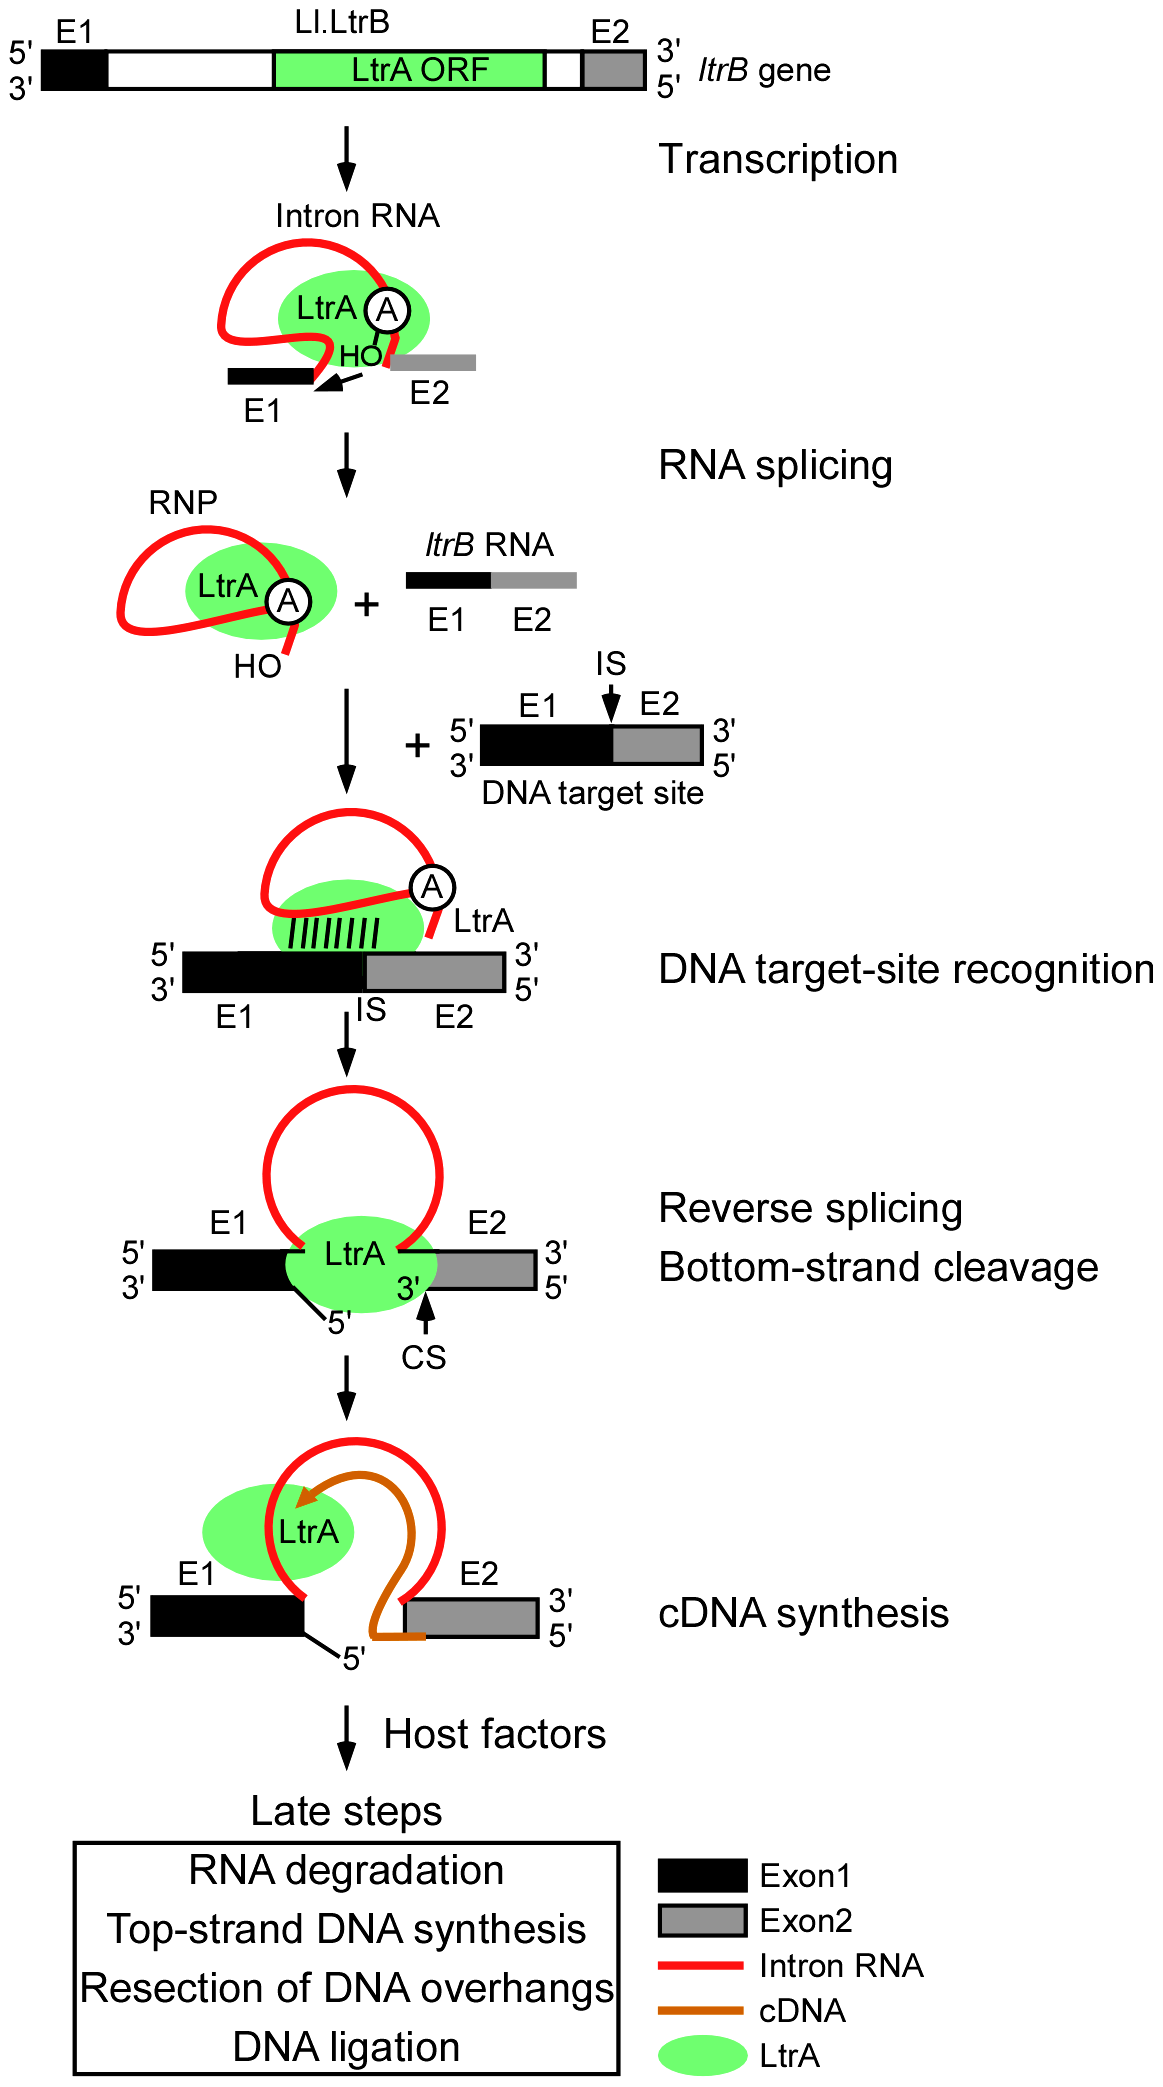 Retrohoming pathway of Ll.LtrB intron lariat RNA in bacteria.